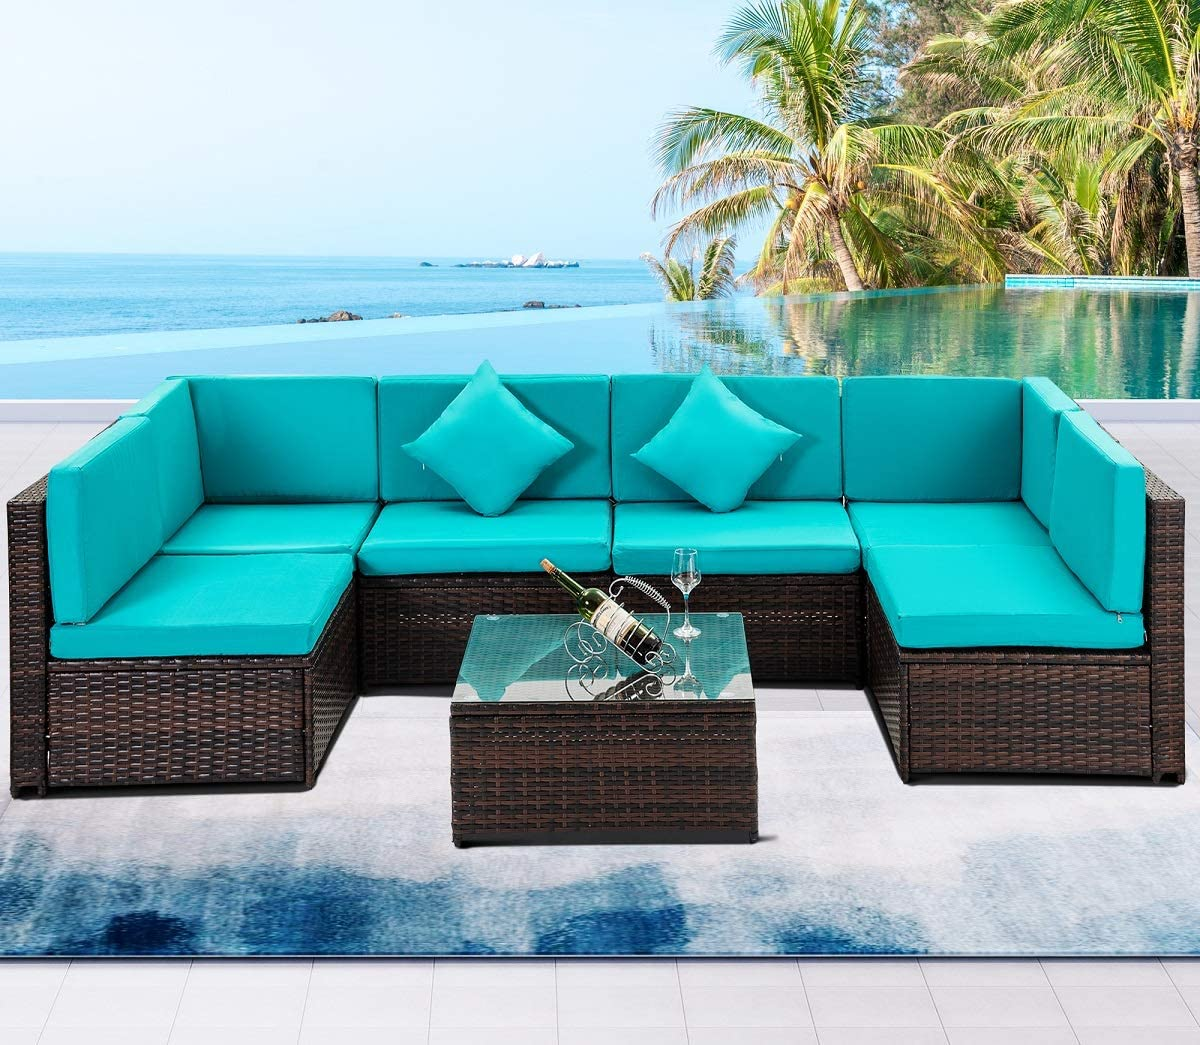 7 PCS Outdoor Rattan Wicker Furniture Set Garden Patio Sectional Sofa with Cushioned Seat and Glass Coffee Table for Poolside, Backyard, Deck or Patio Green Cushion